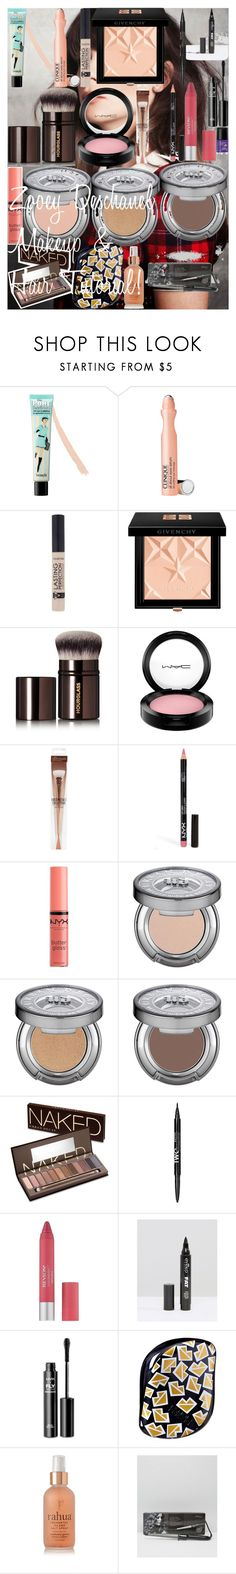 """""""Zooey Deschanel Makeup & Hair Tutorial!"""" by oroartye-1 on Polyvore featuring beauty, Zooey, Benefit, Clinique, Givenchy, Hourglass Cosmetics, MAC Cosmetics, Zad, NYX and Urban Decay"""